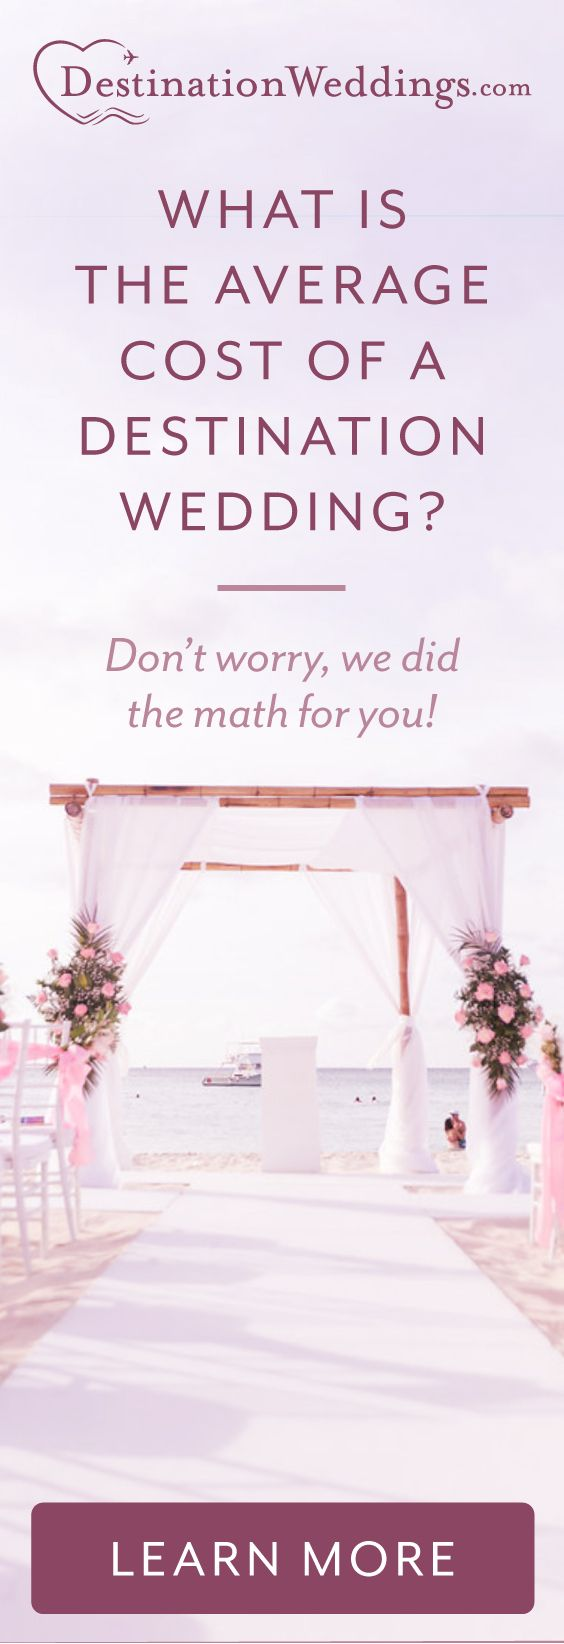 in our latest trend report we broke down the cost of the average destination wedding